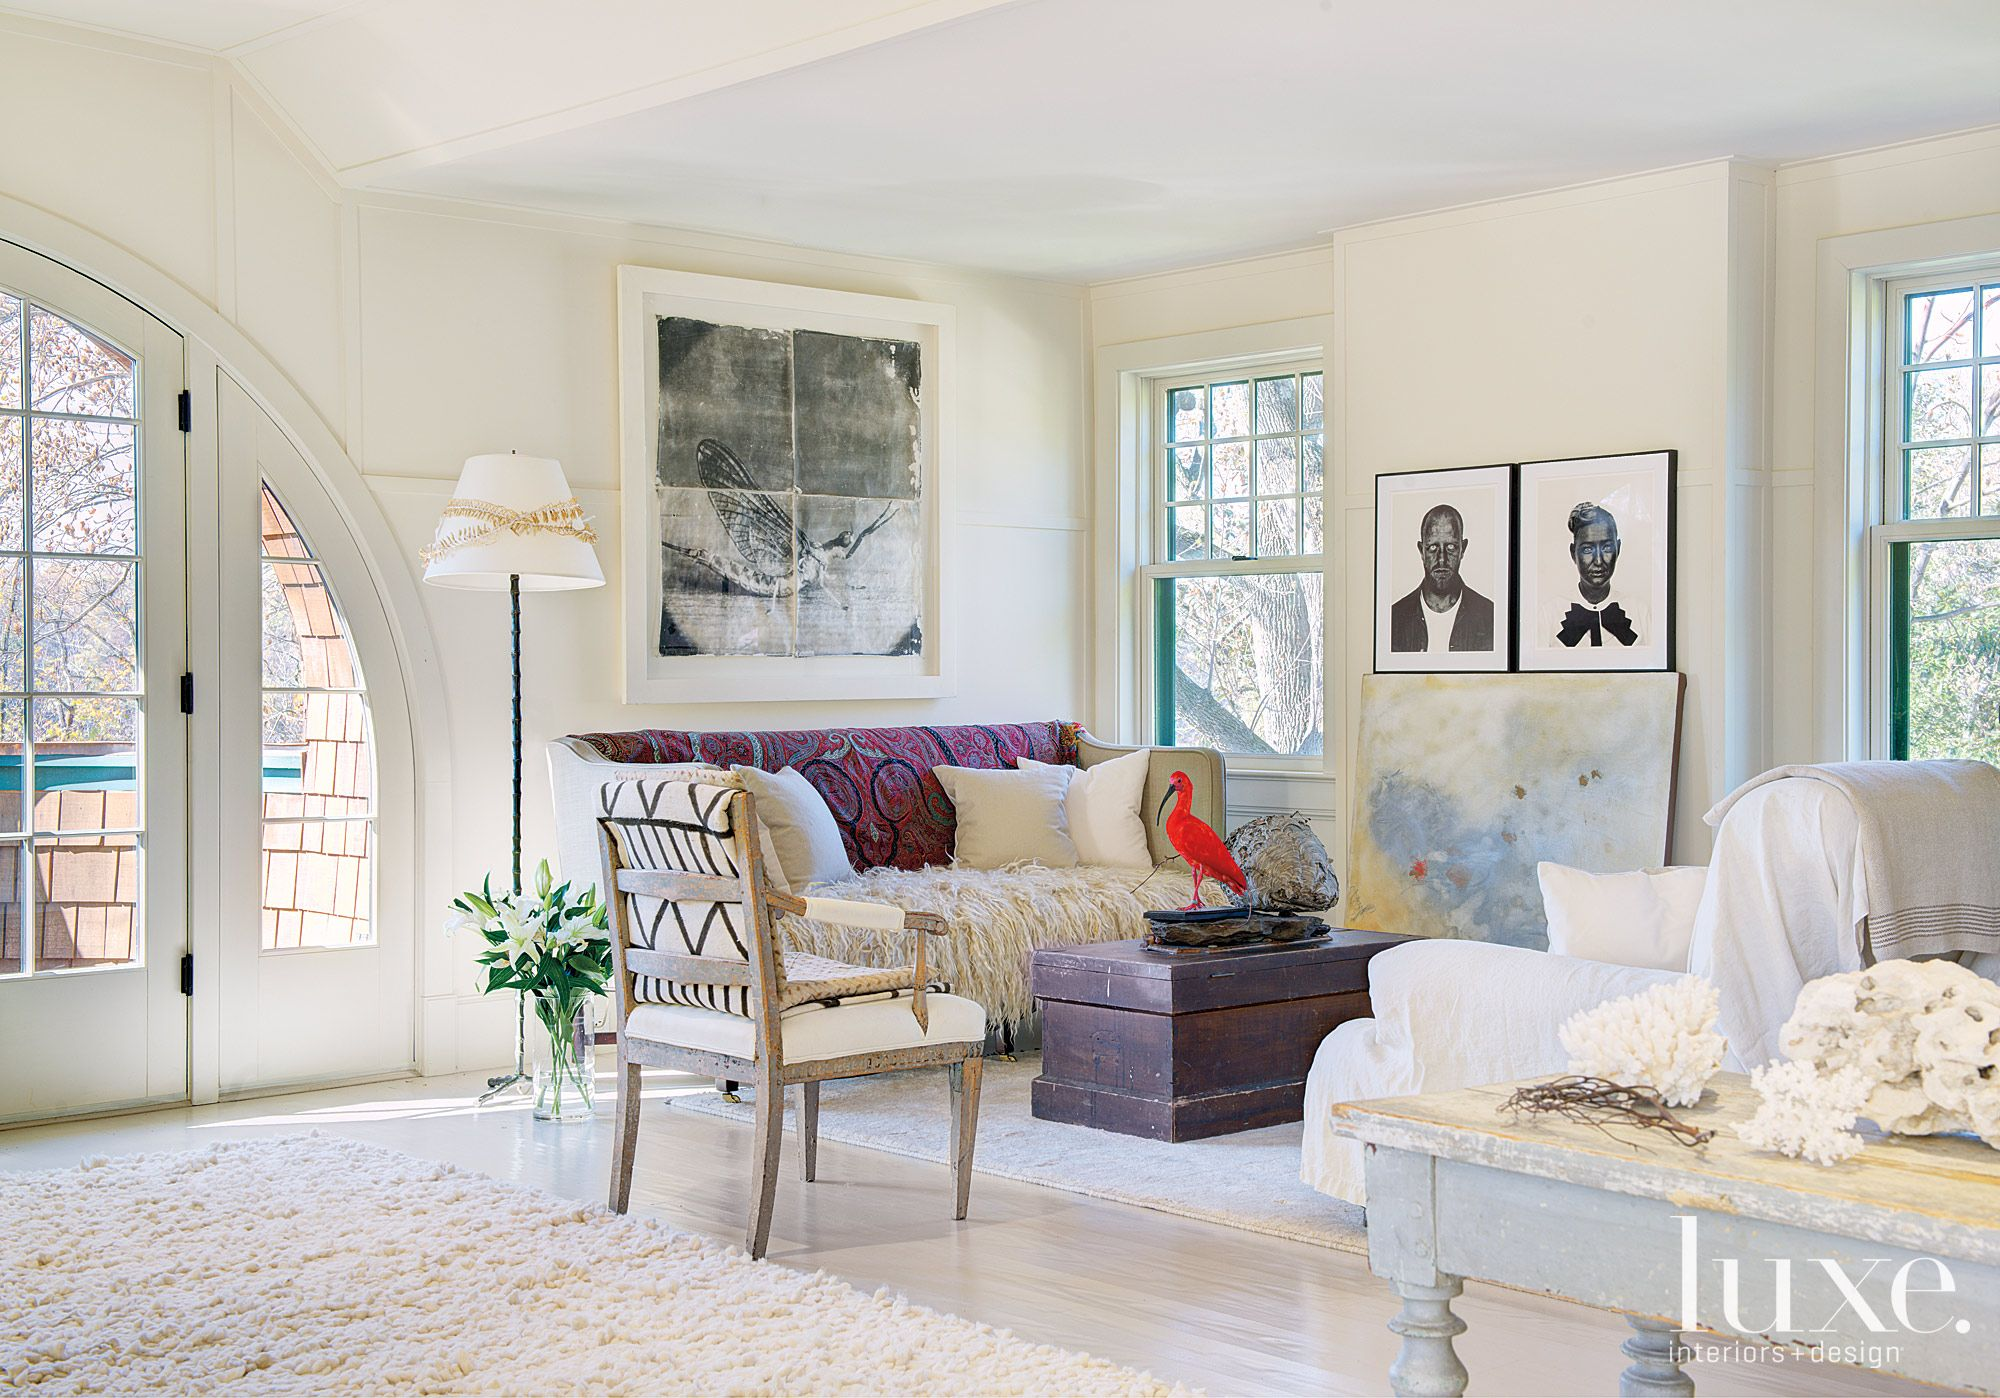 Country Cream Attic with Swedish Antique Furnishings